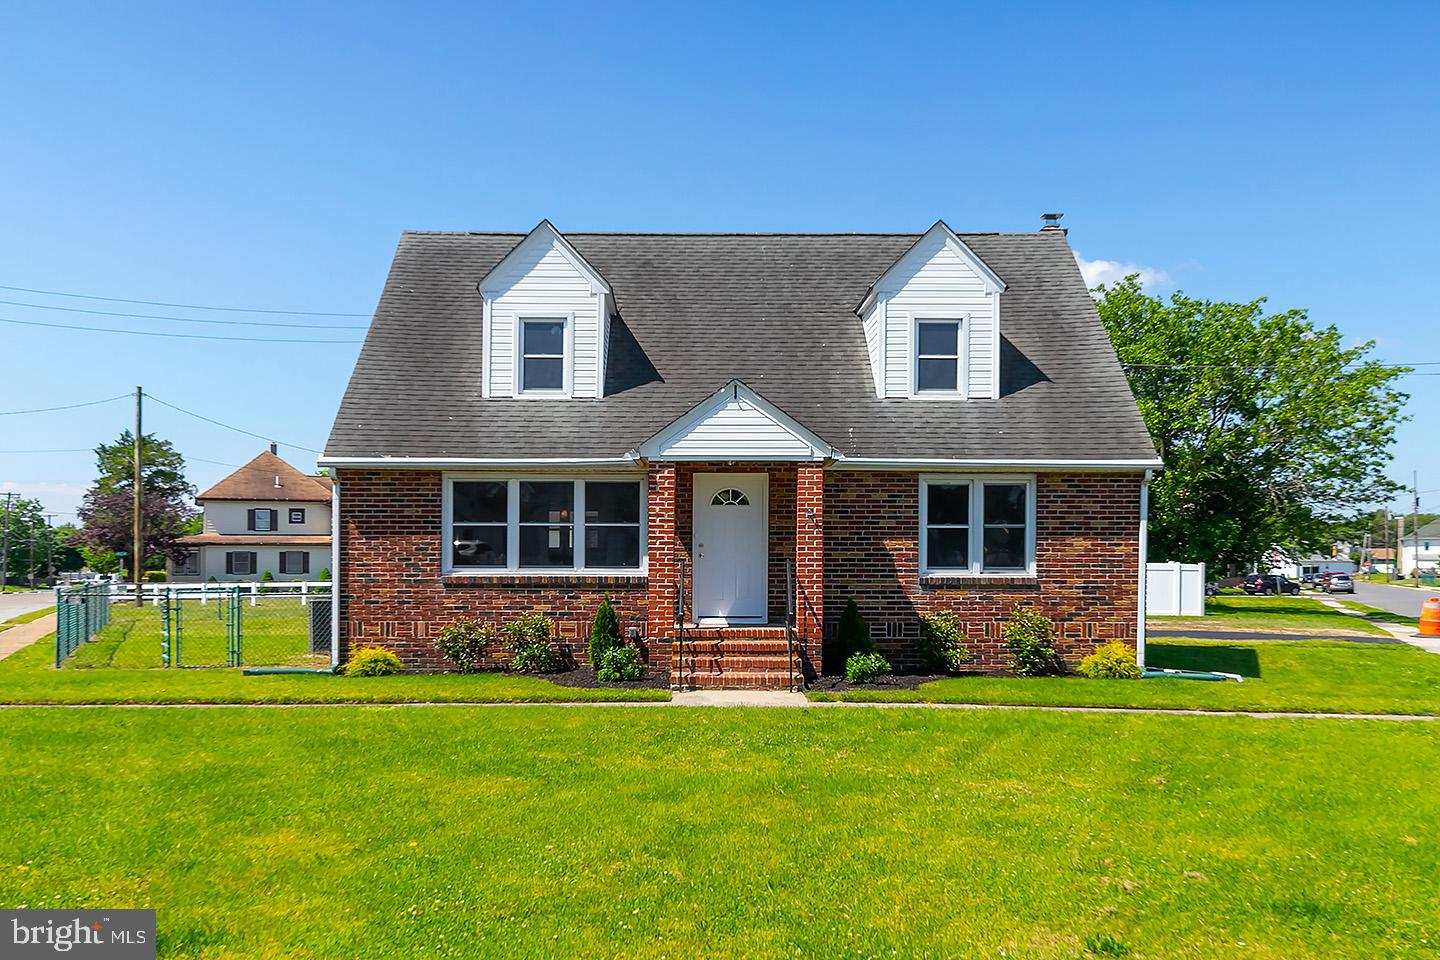 410 JEFFERSON STREET, GIBBSTOWN, NJ 08027